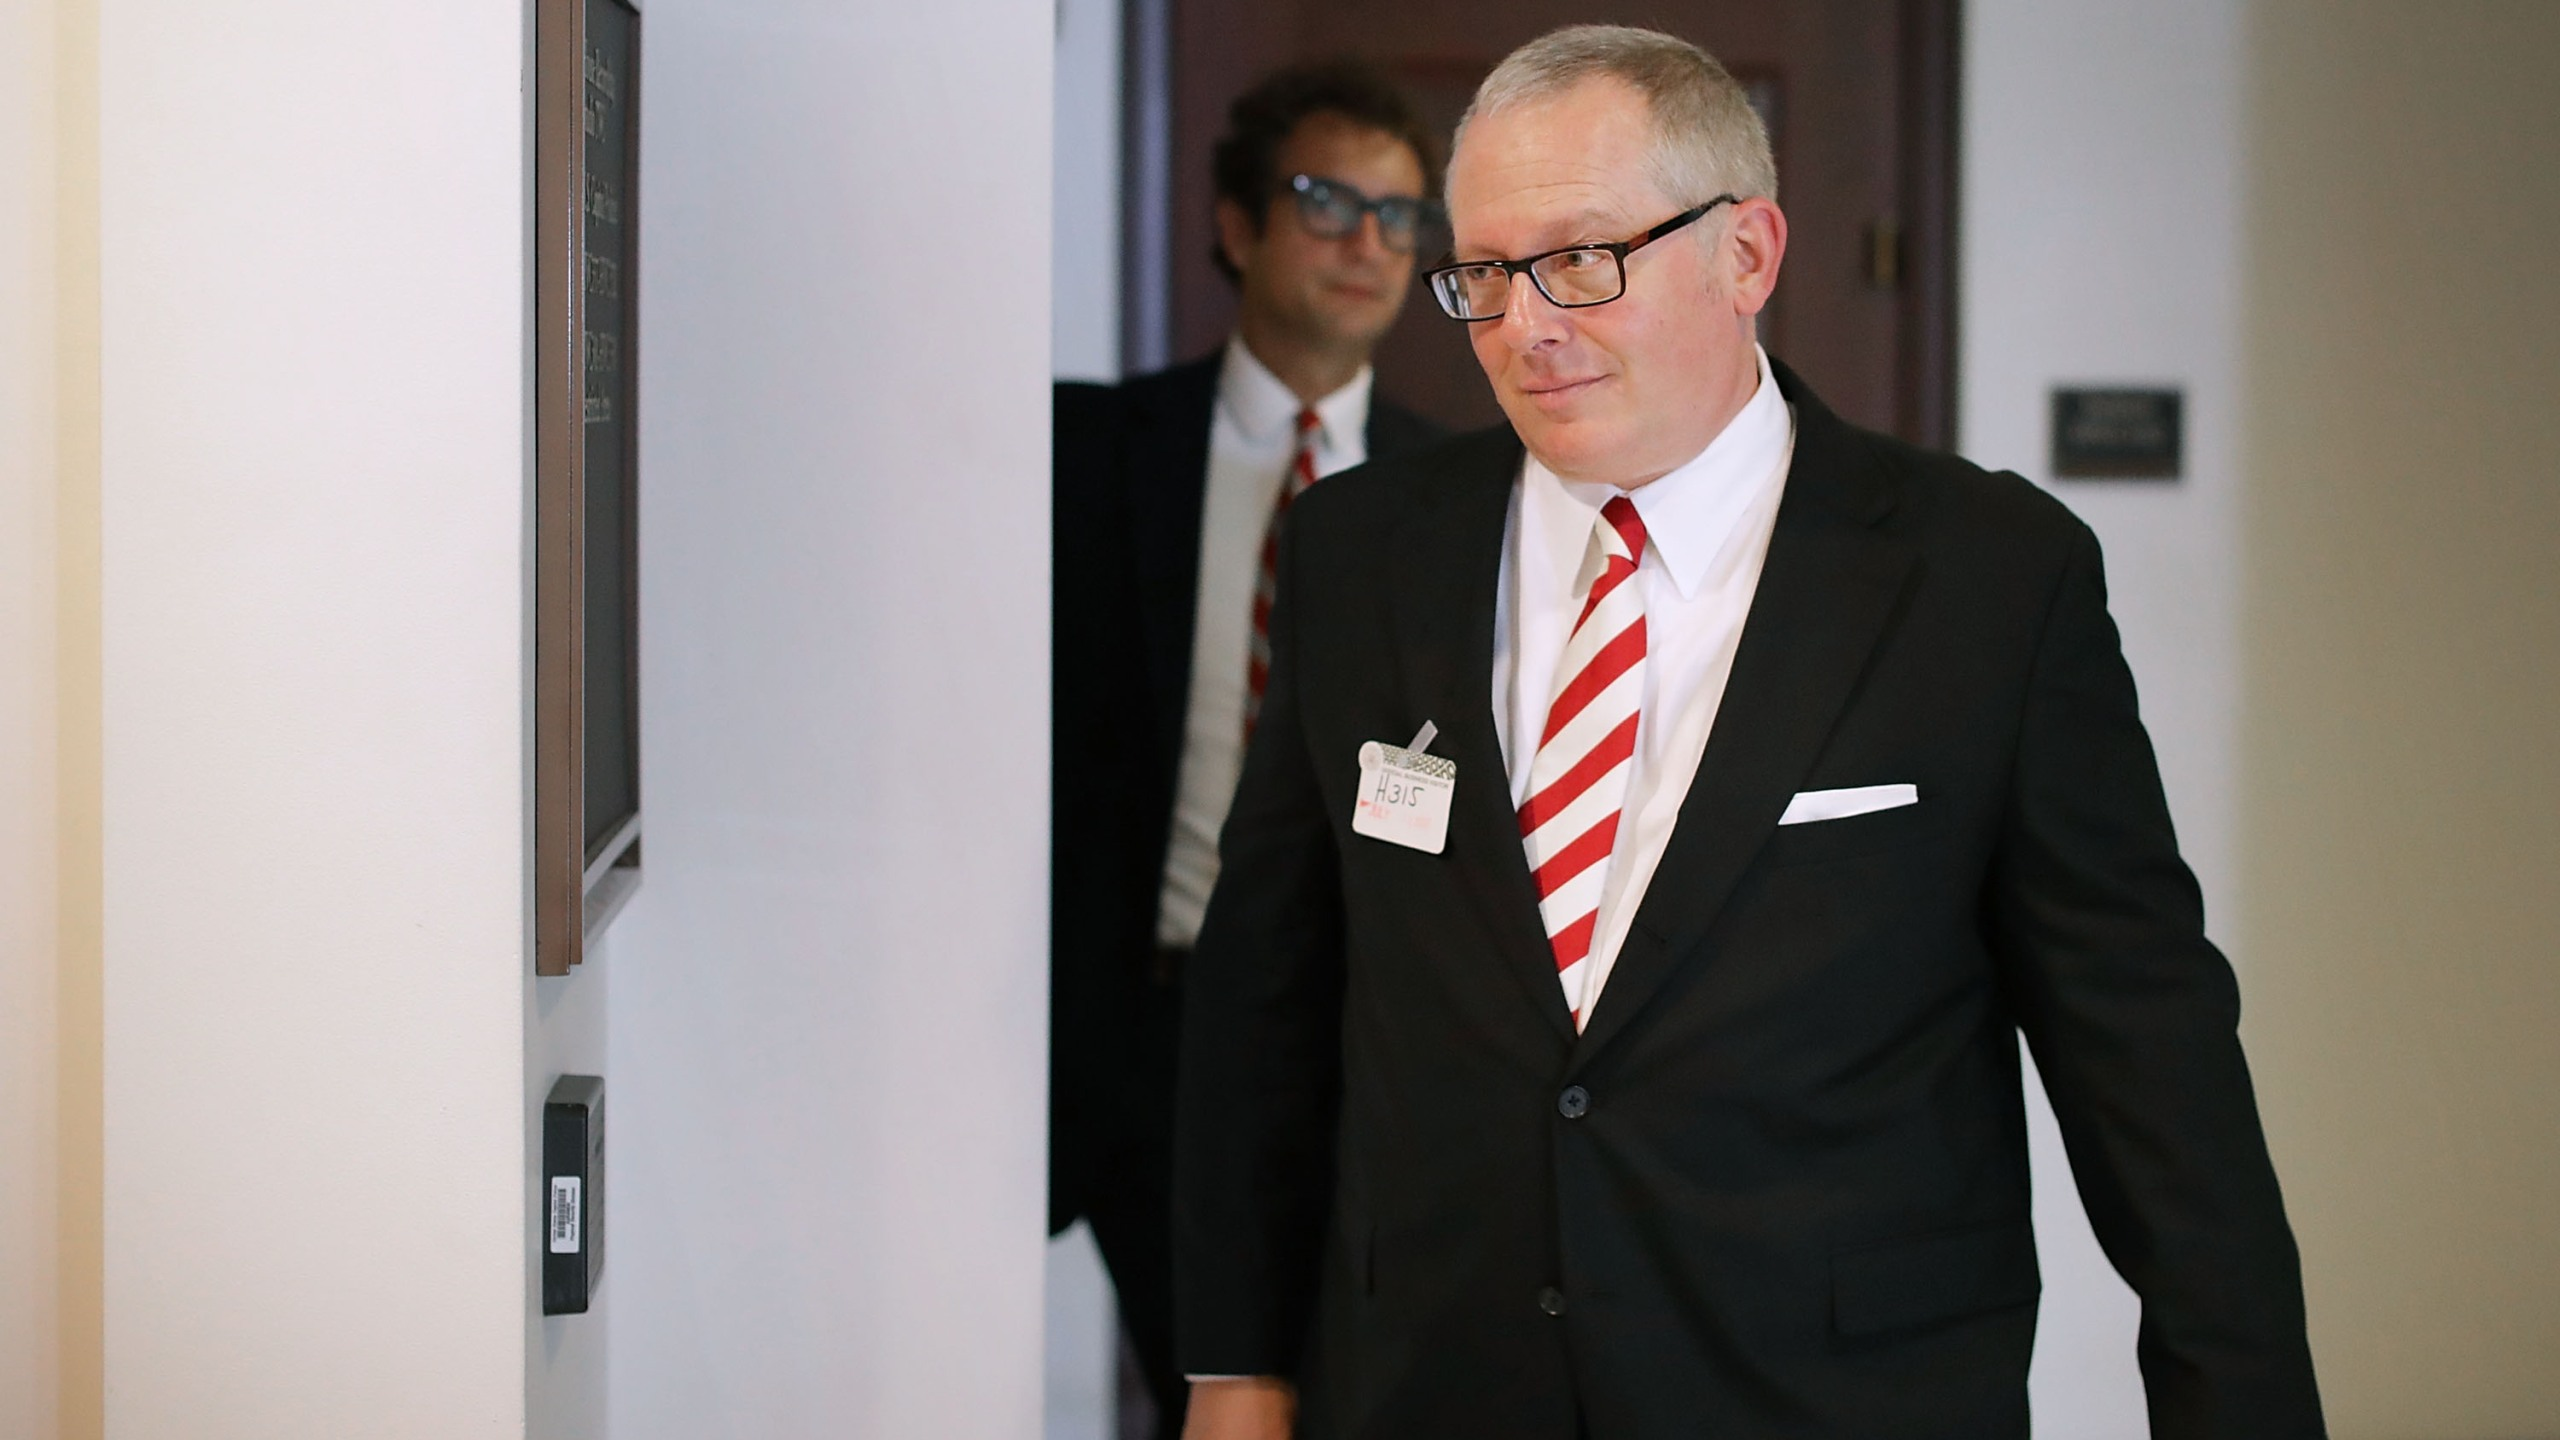 Former Trump campaign aide Michael Caputo arrives to testify before the House Intelligence Committee during a closed-door session at the U.S. Capitol on July 14, 2017. (Chip Somodevilla/Getty Images)